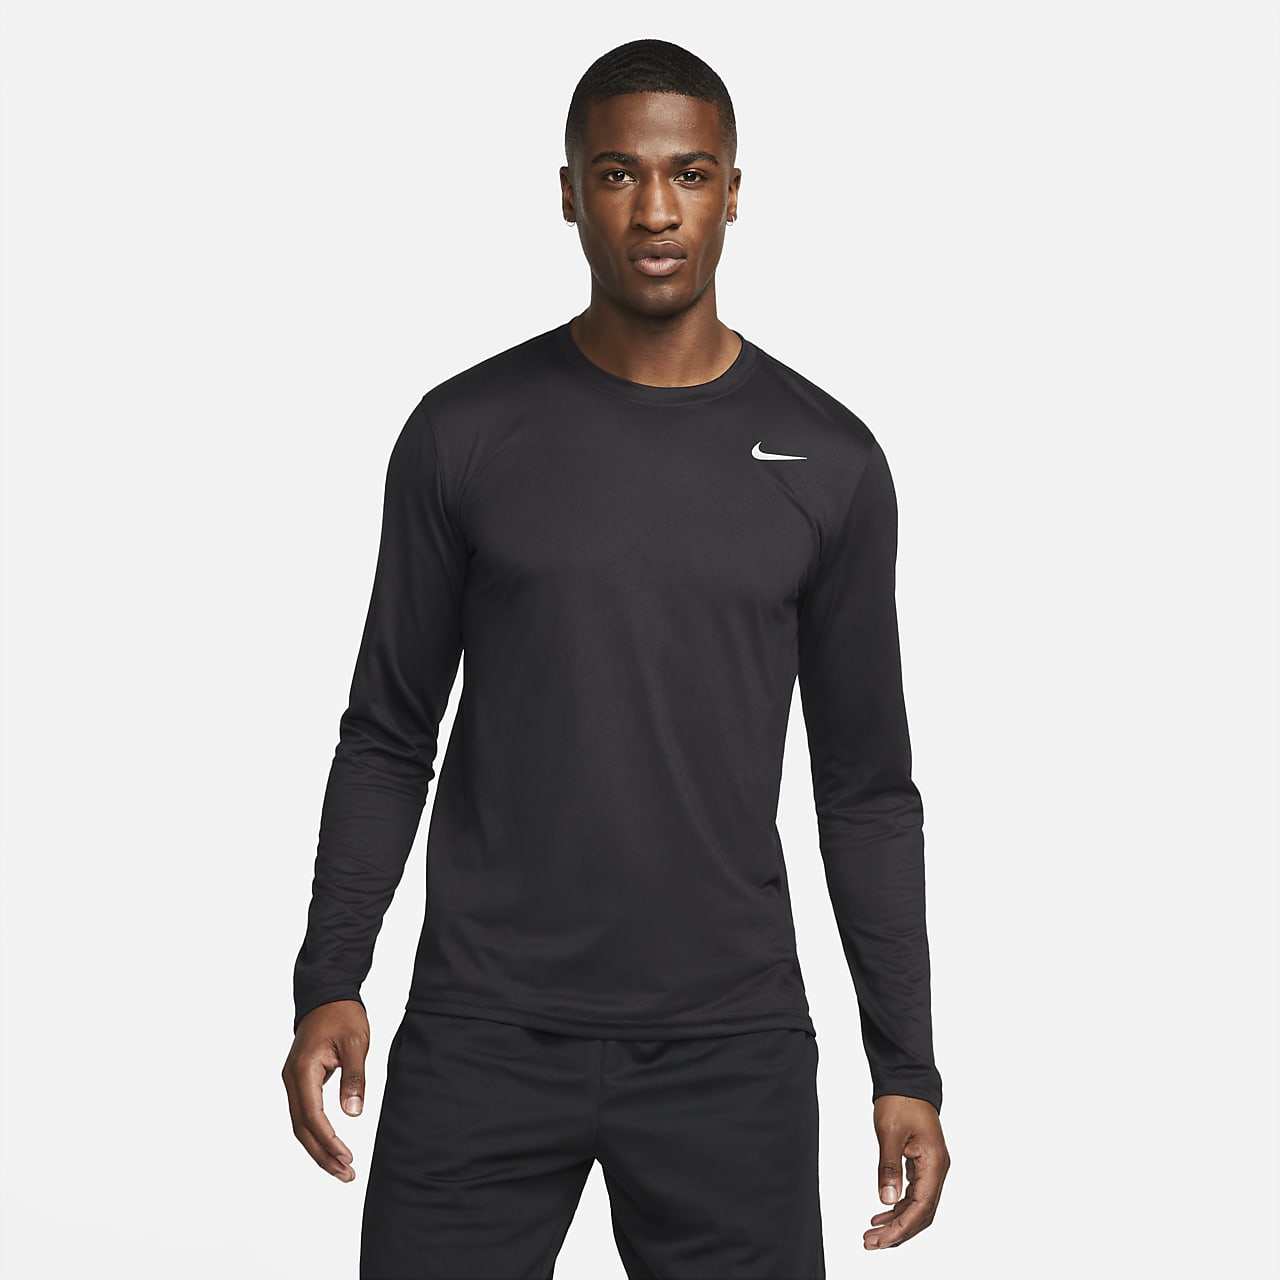 b4cb78dcbea9ab Nike Dri-FIT Legend 2.0 Men s Long-Sleeve Training Top. Nike.com